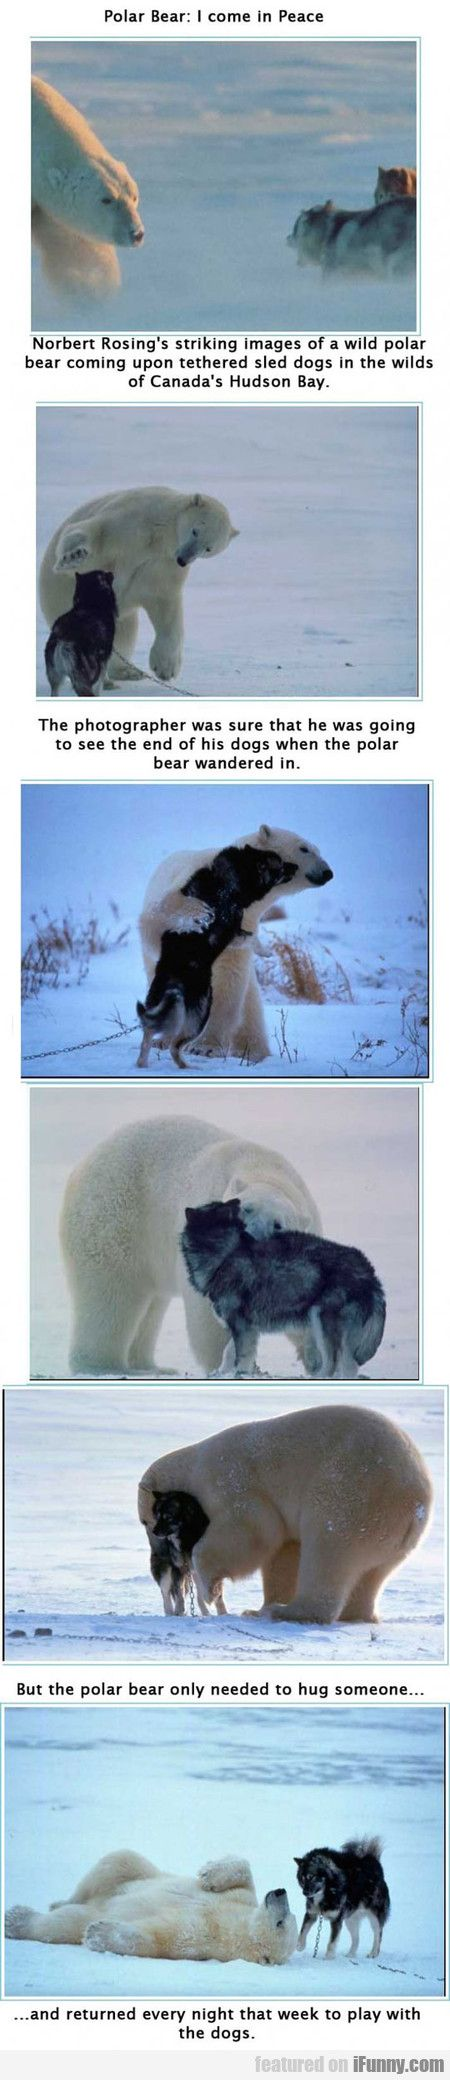 Forgetting this one awesome adorable thing if u ever see a wild polar bear ur gonna die